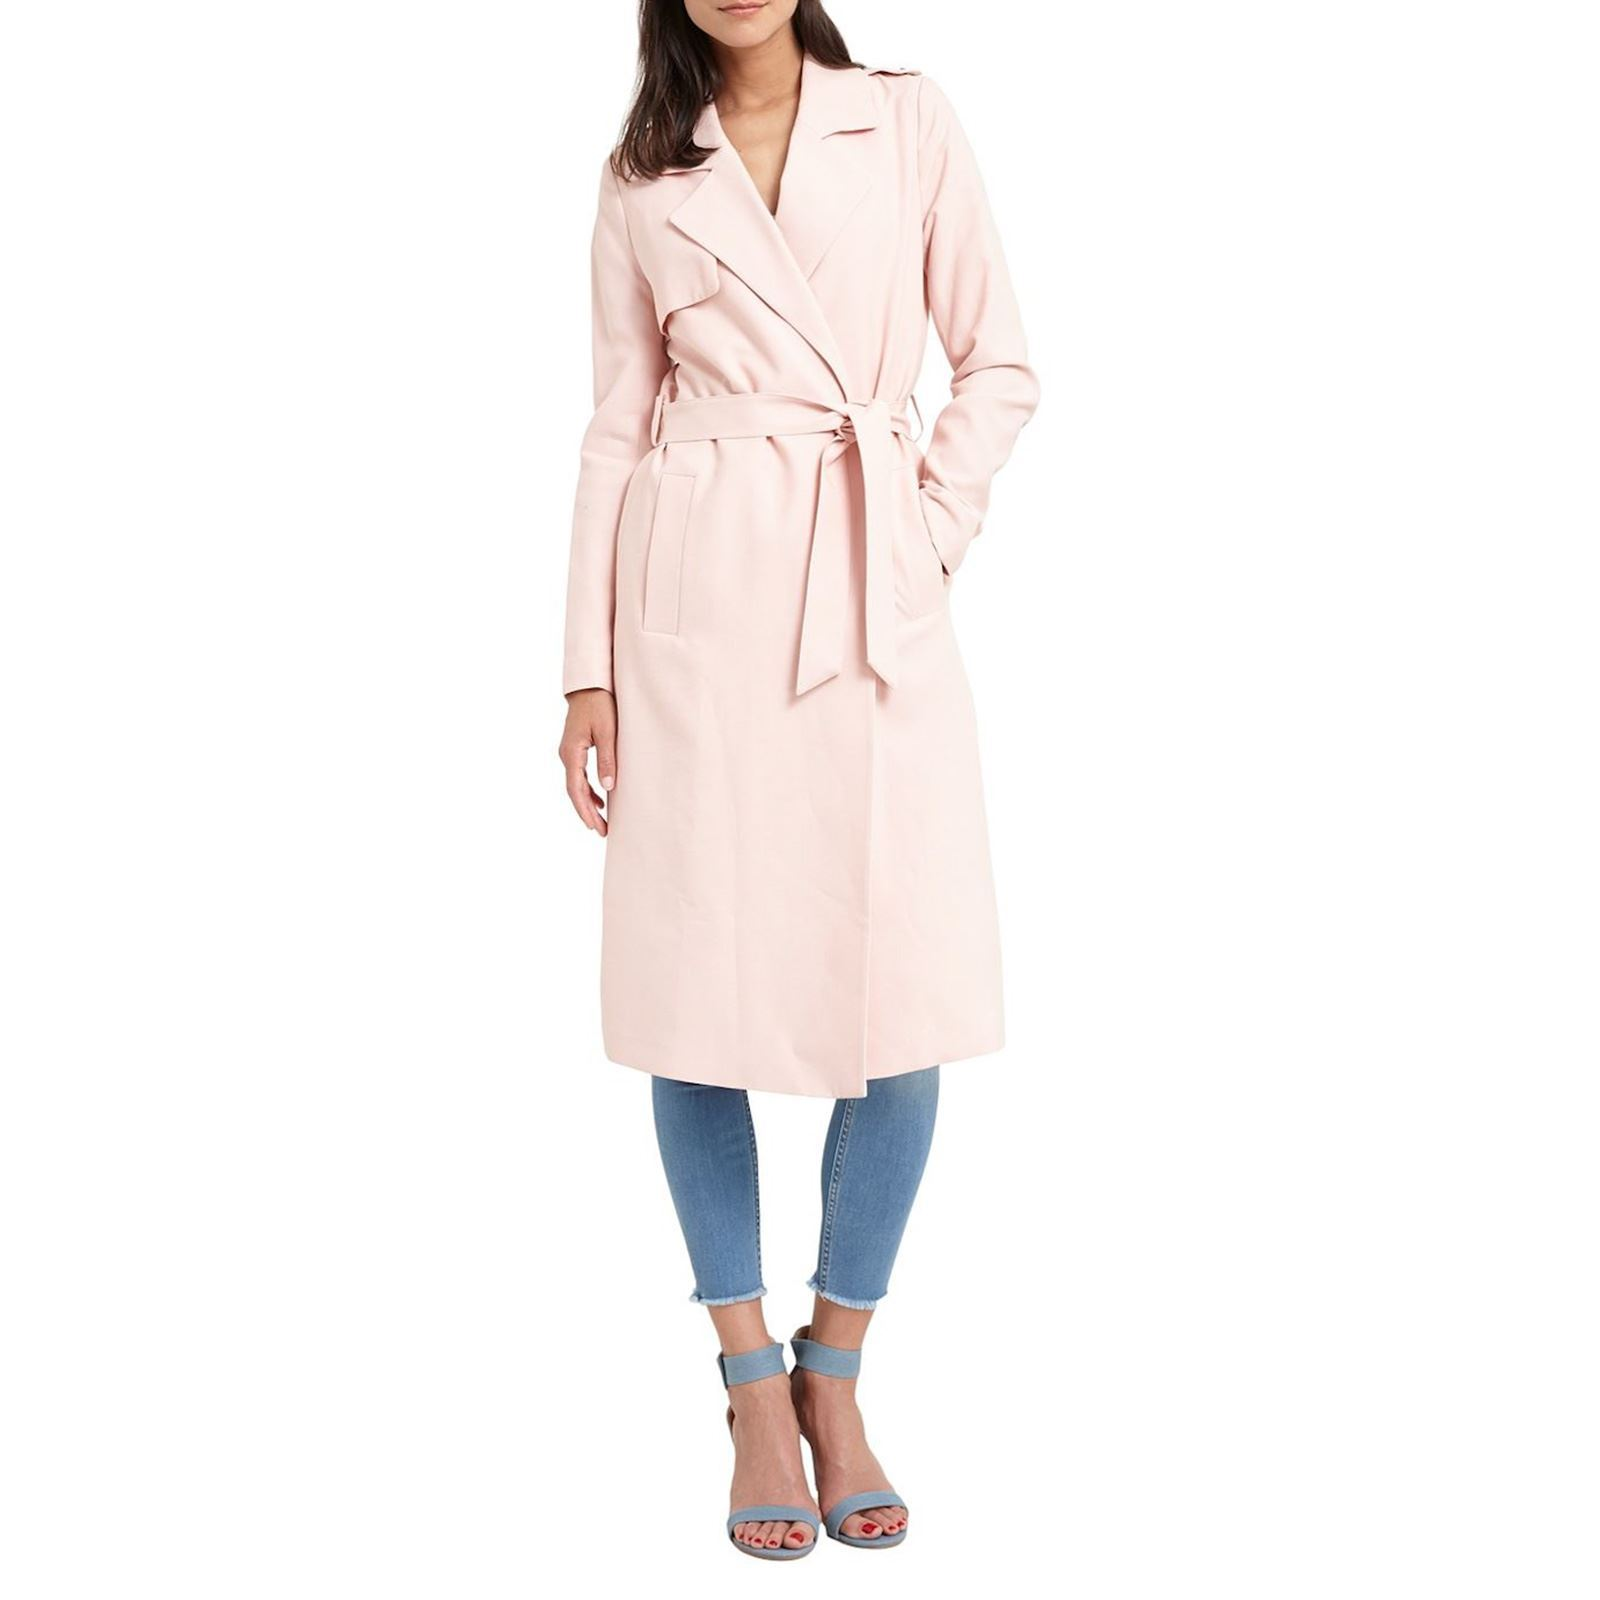 75ab9b067a529 Trench Rose Brandalley Morgan Fluide Fluide Rose Trench Morgan qWH6Iw